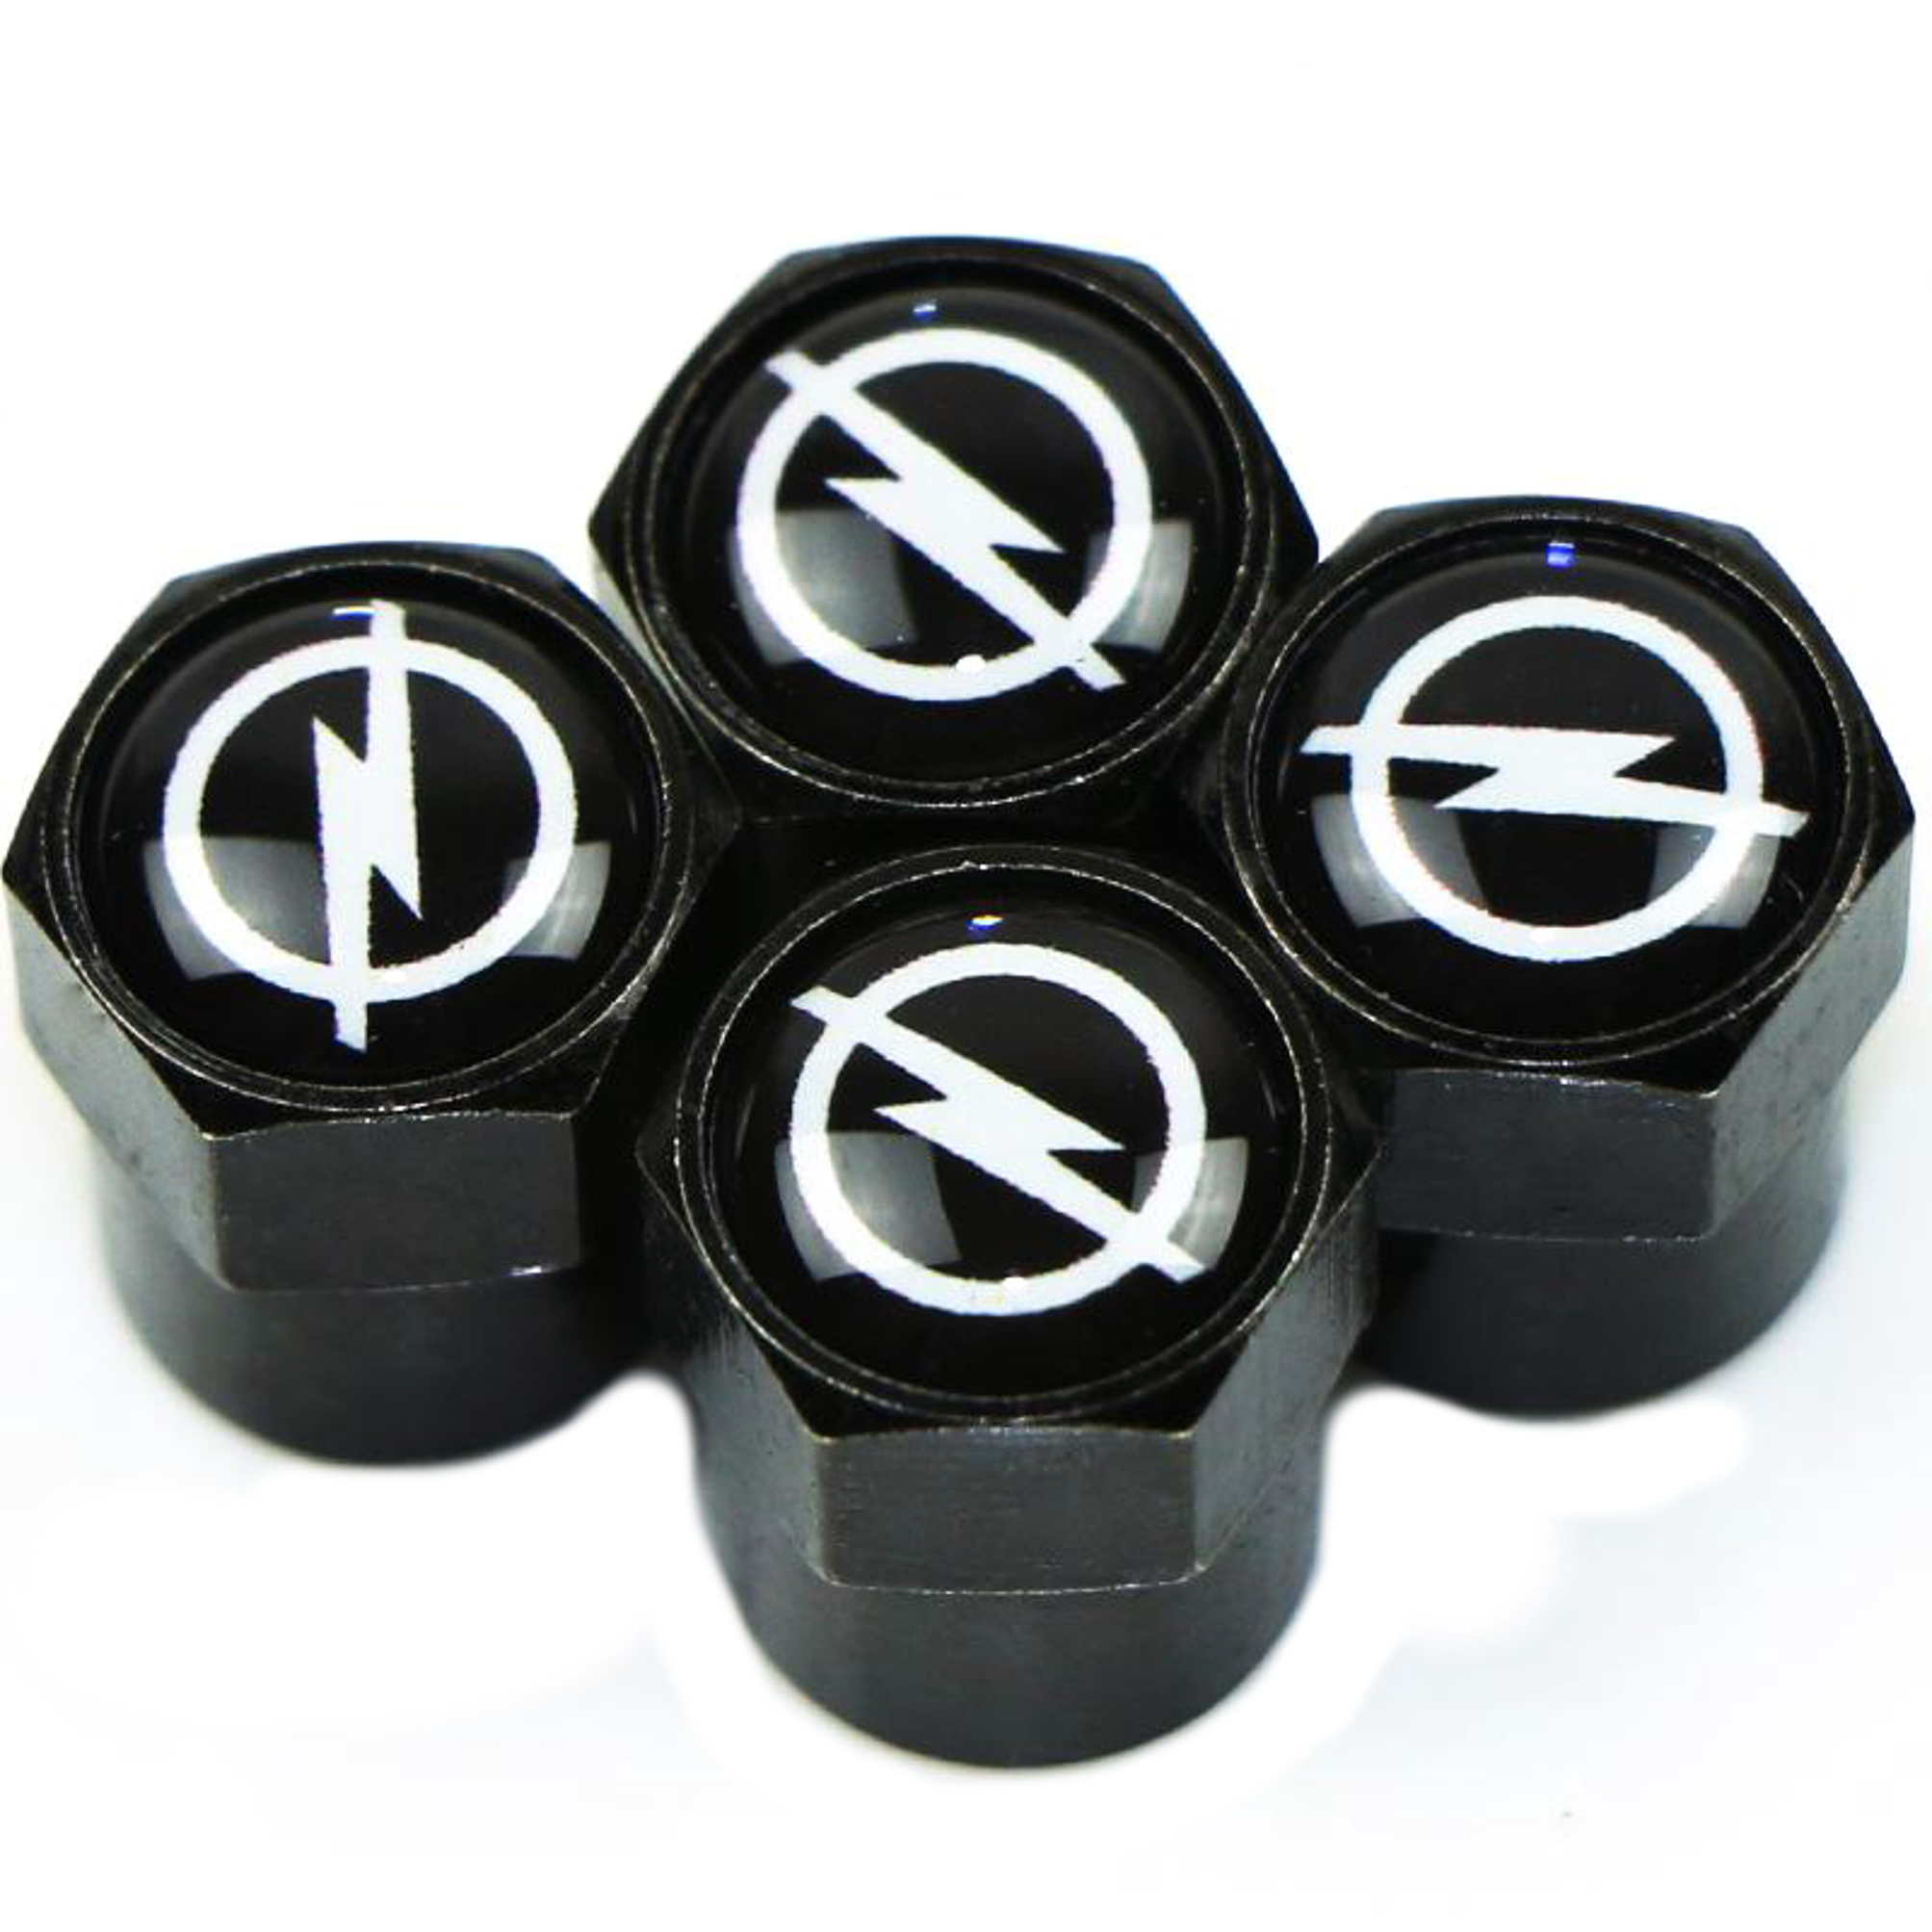 The Flash Thunderbolt 4 Pc. Set Valve Tire Stem Cap Cover Car Motorcycle Bicycle Black Mental Set CAR-VSC-7